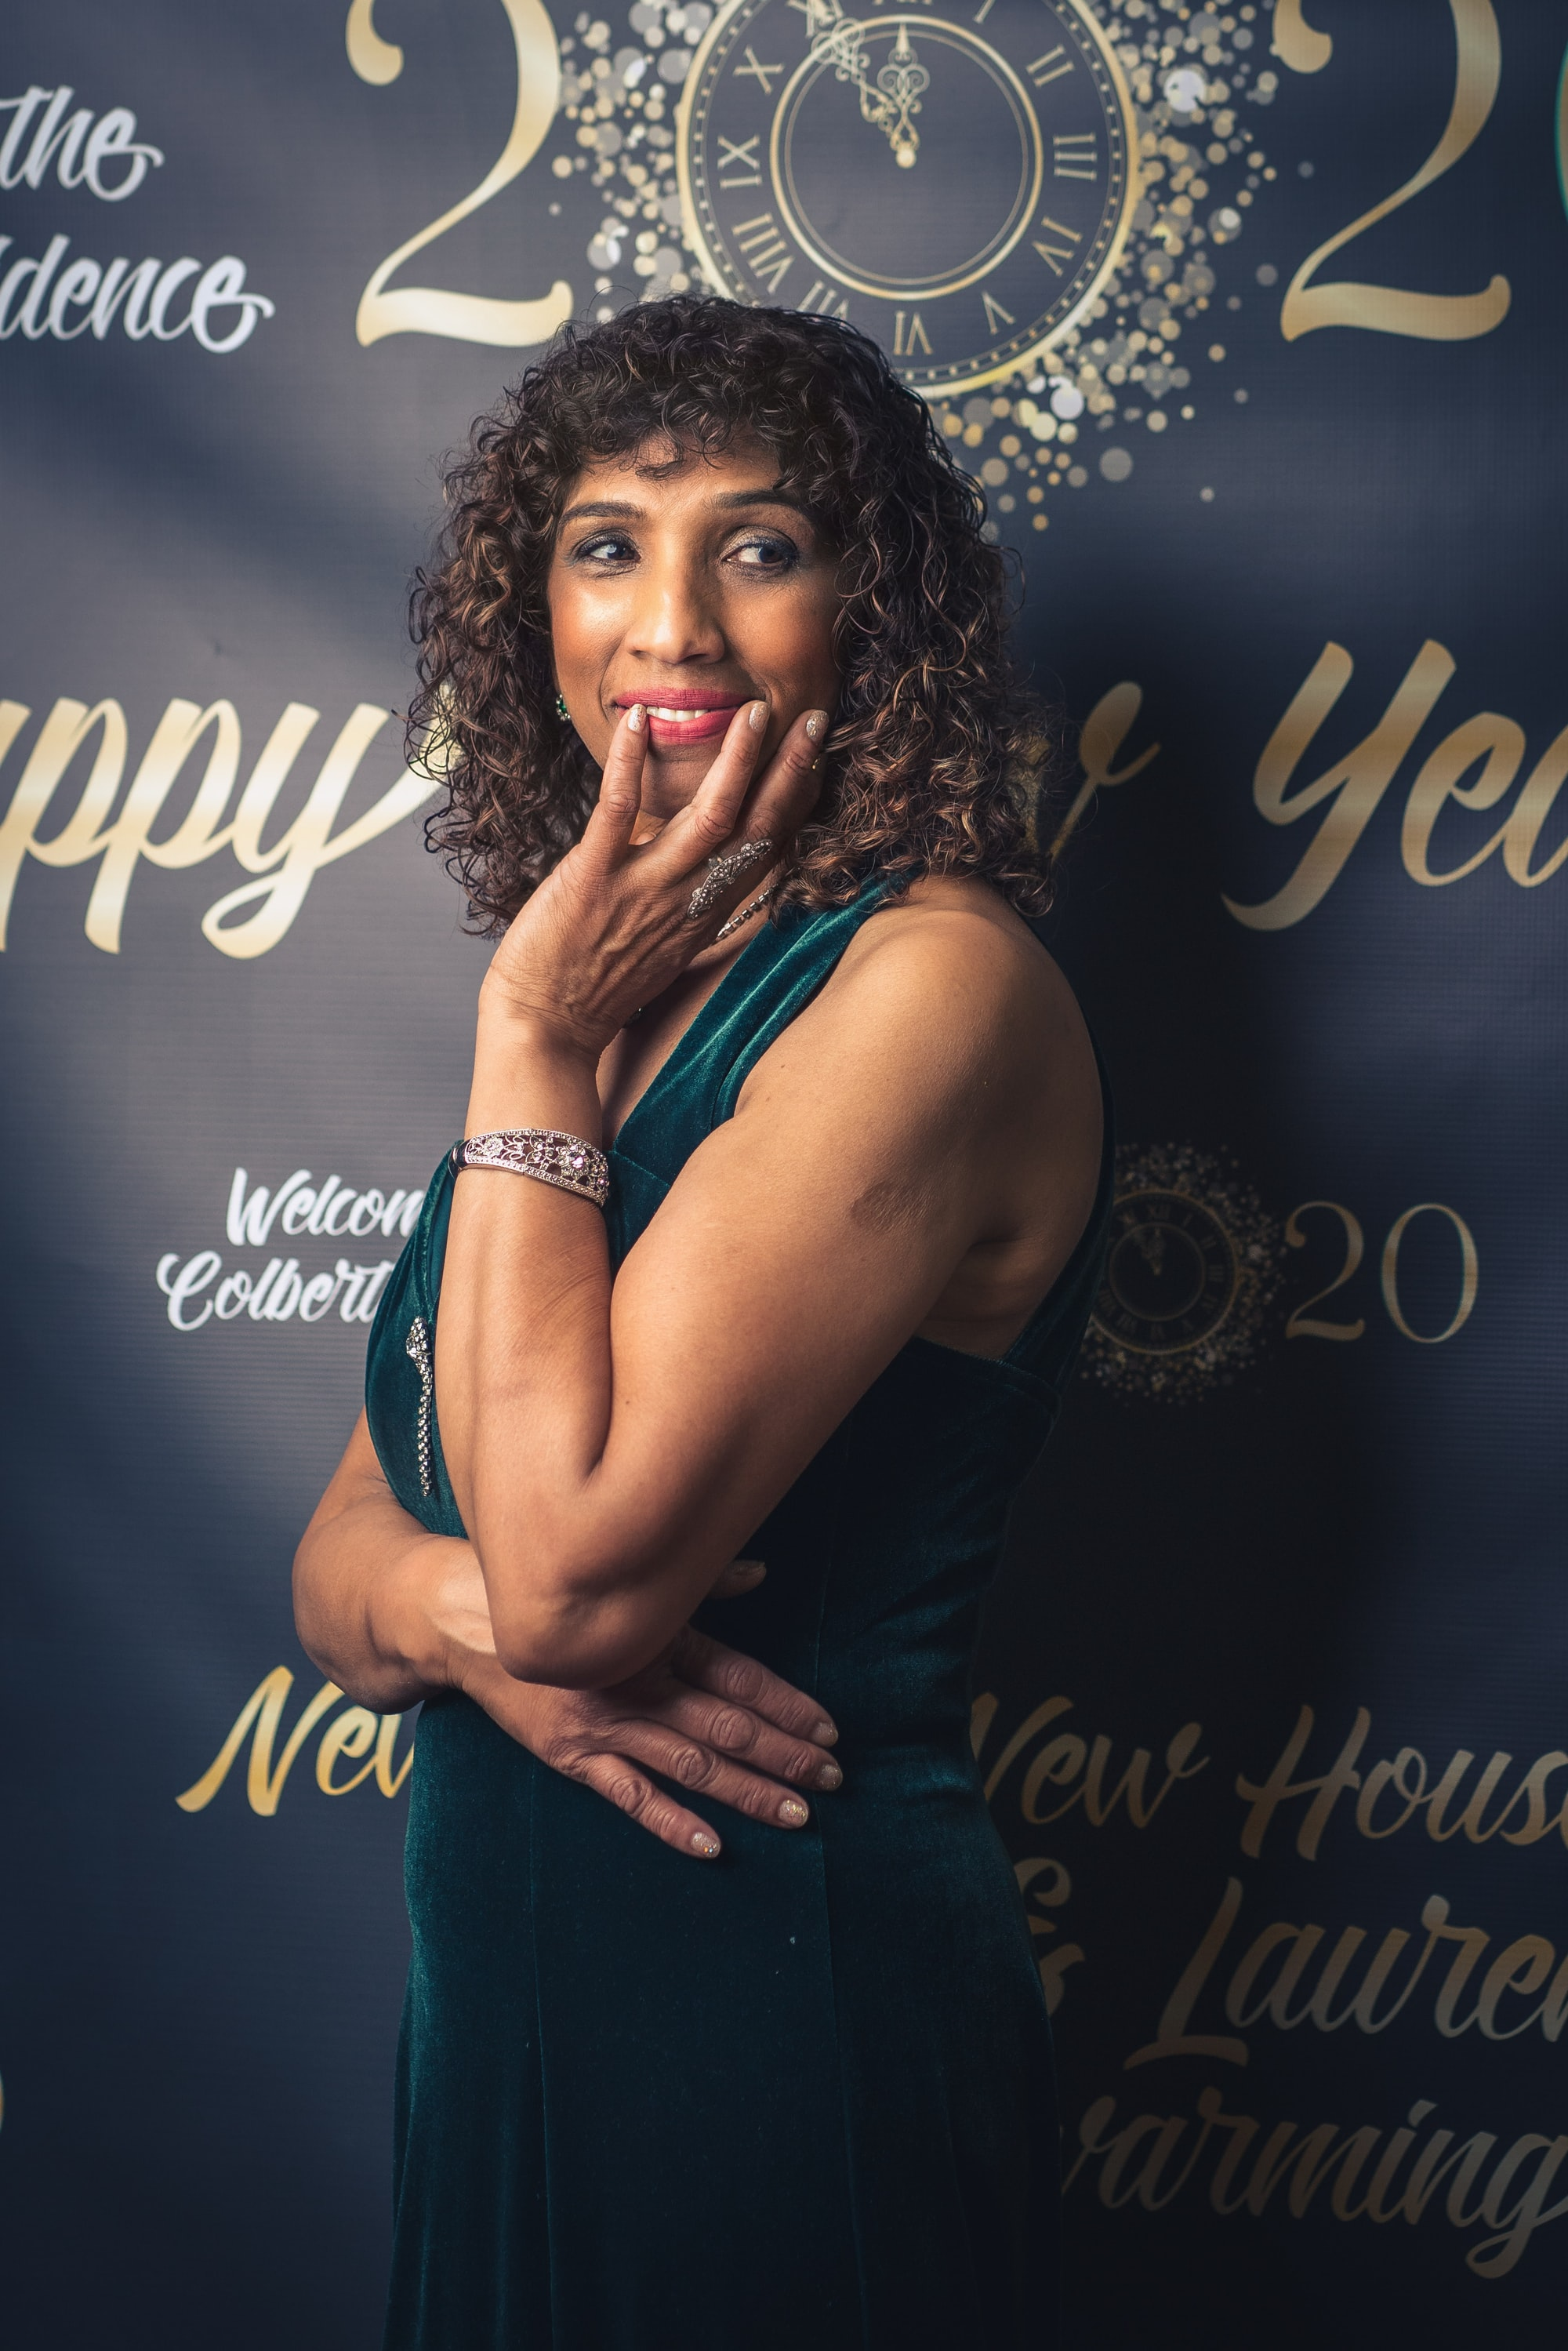 Woman wearing a green dress and getting ready for a new years party.